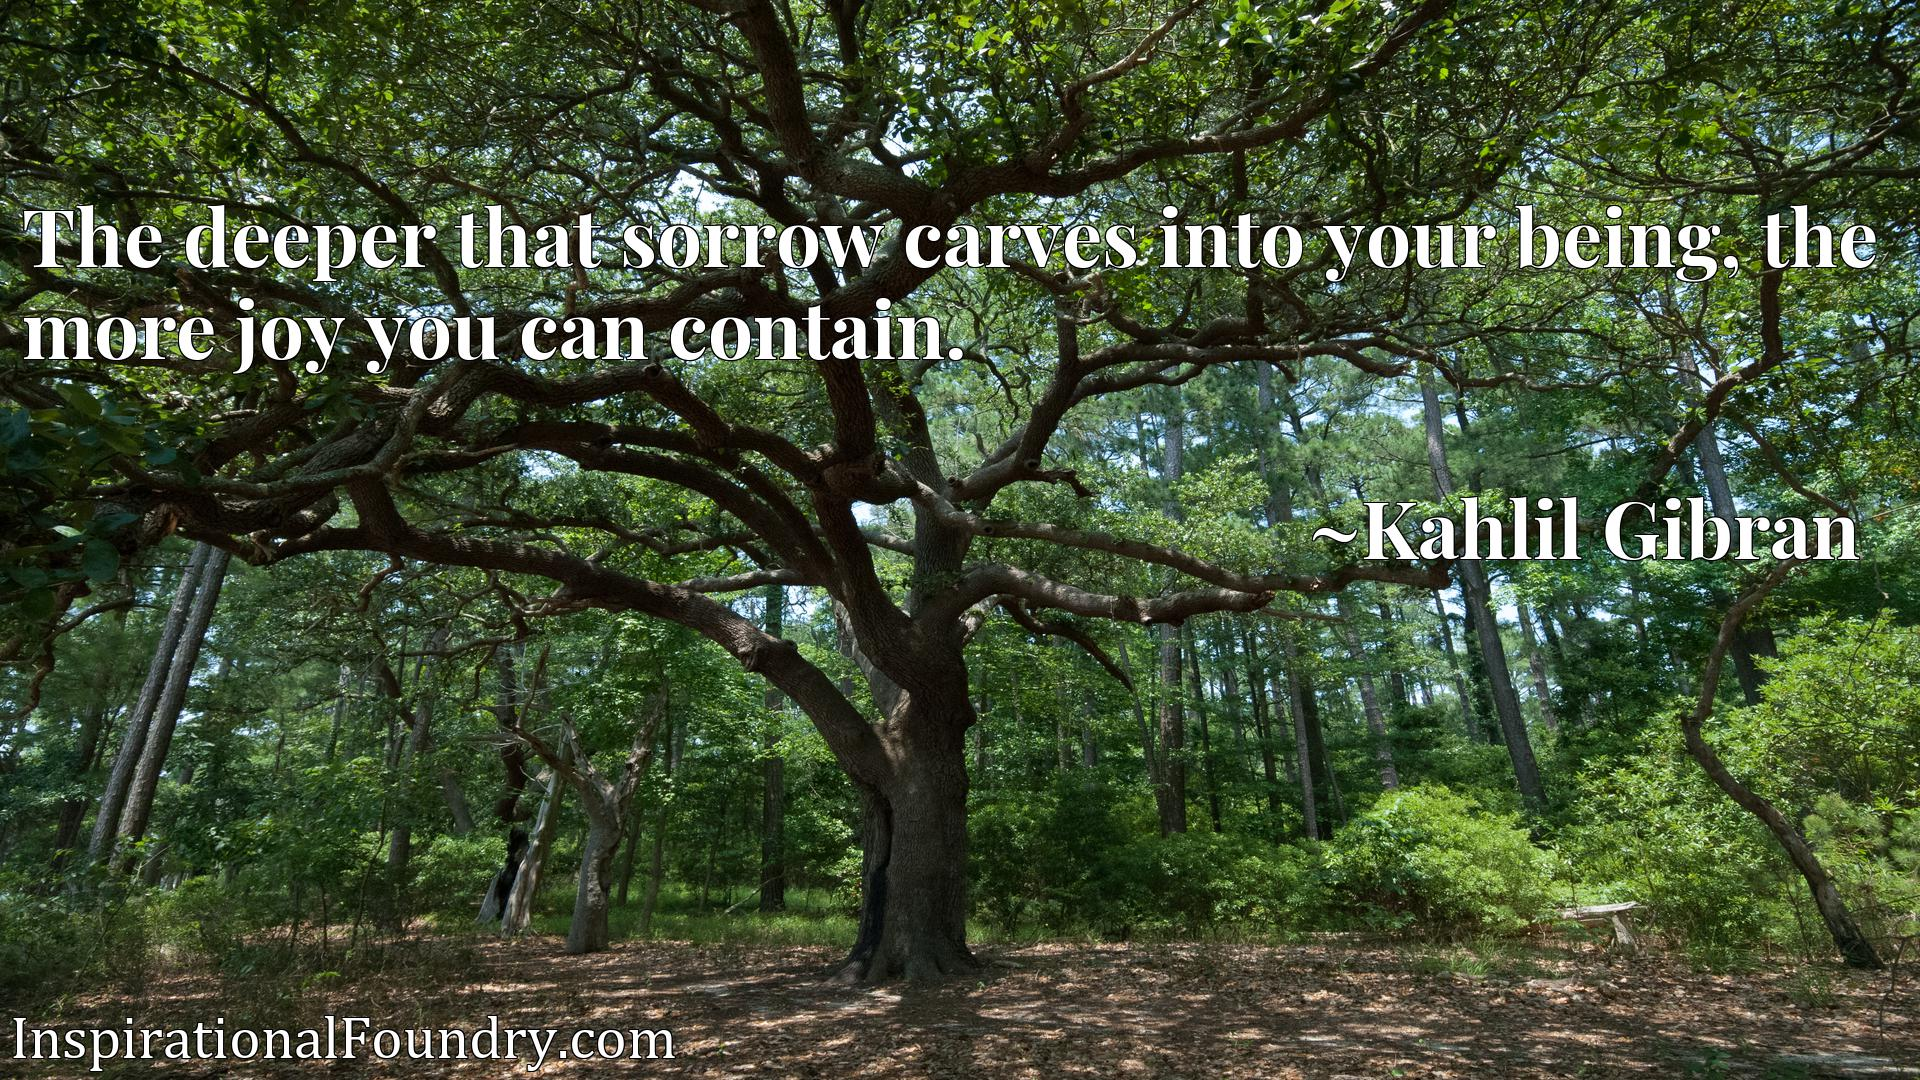 The deeper that sorrow carves into your being, the more joy you can contain.